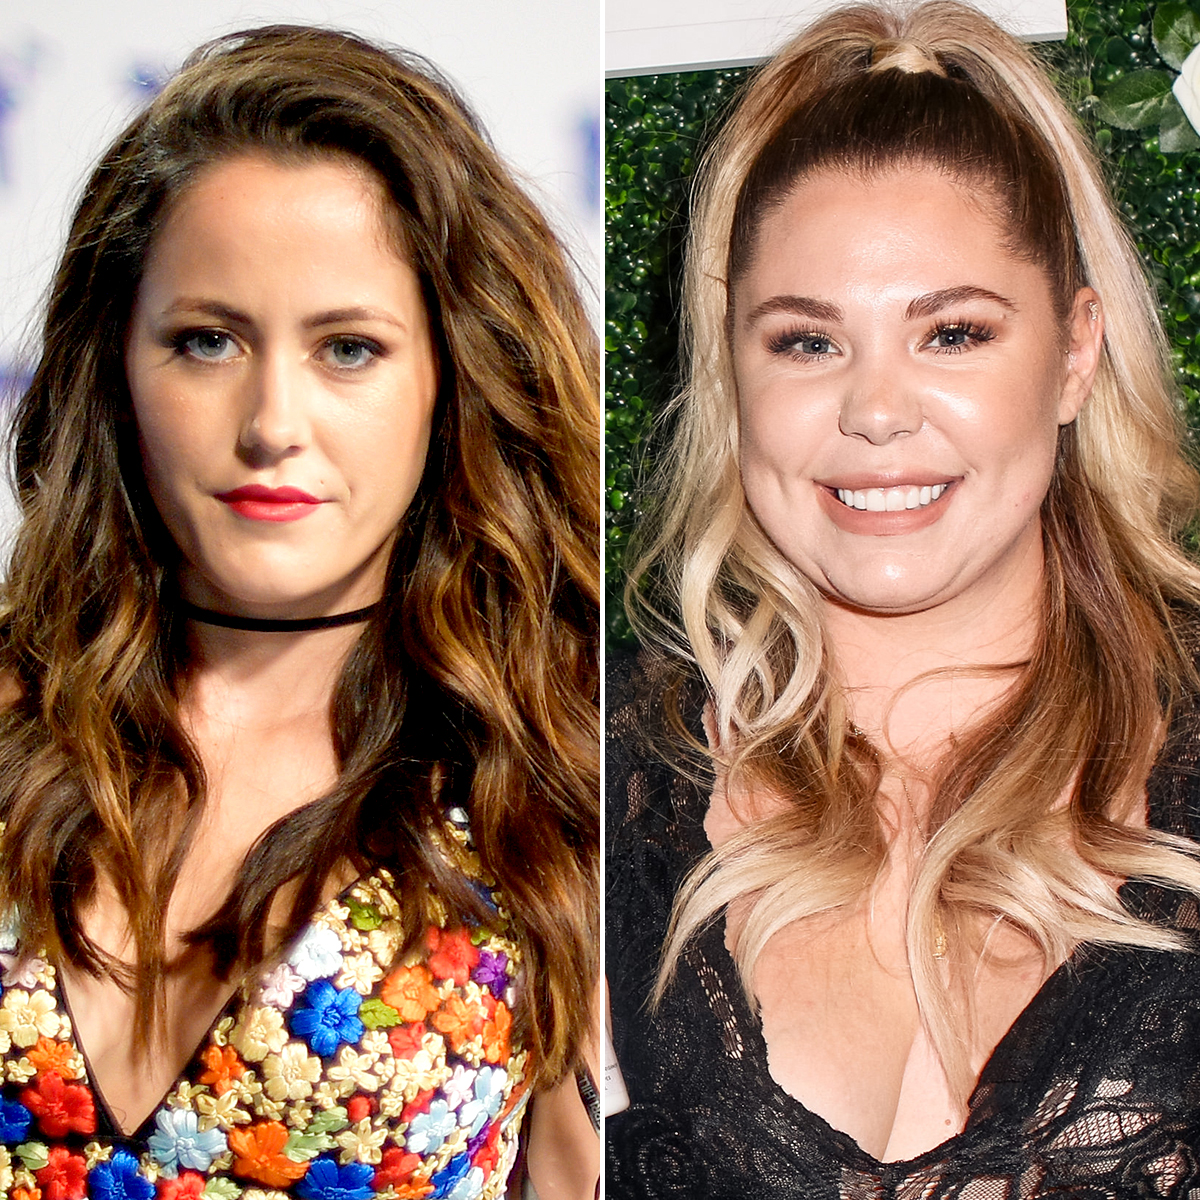 Jenelle-Evans-Sets-Kailyn-Lowry's-Hair-Products-Ablaze